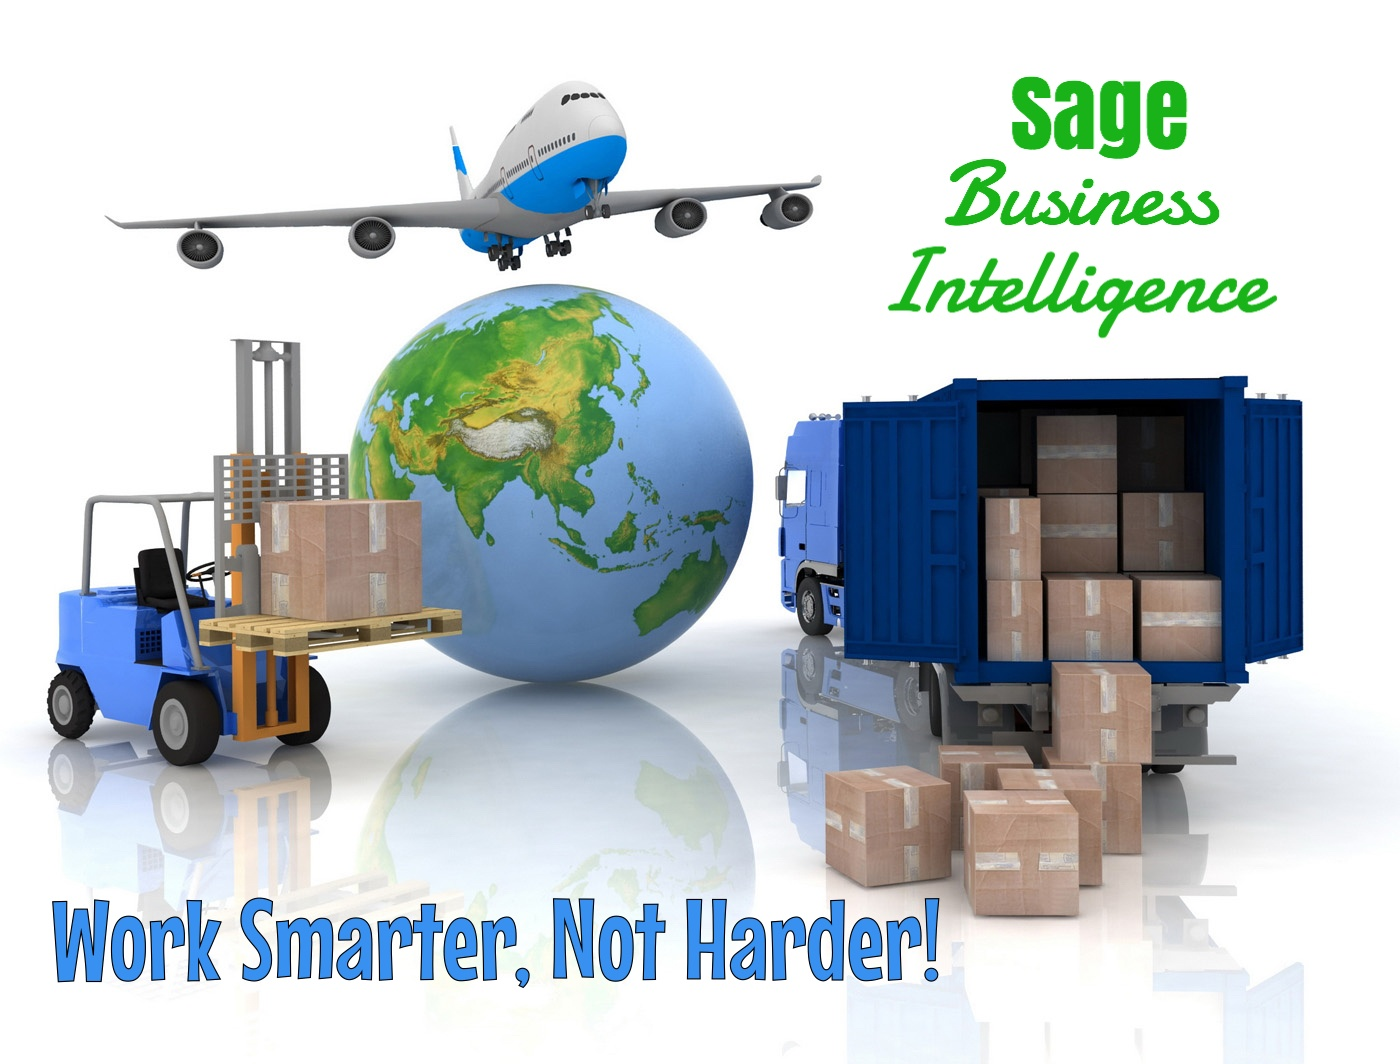 Sage business intelligence allows your SMB to work smarter, not harder.